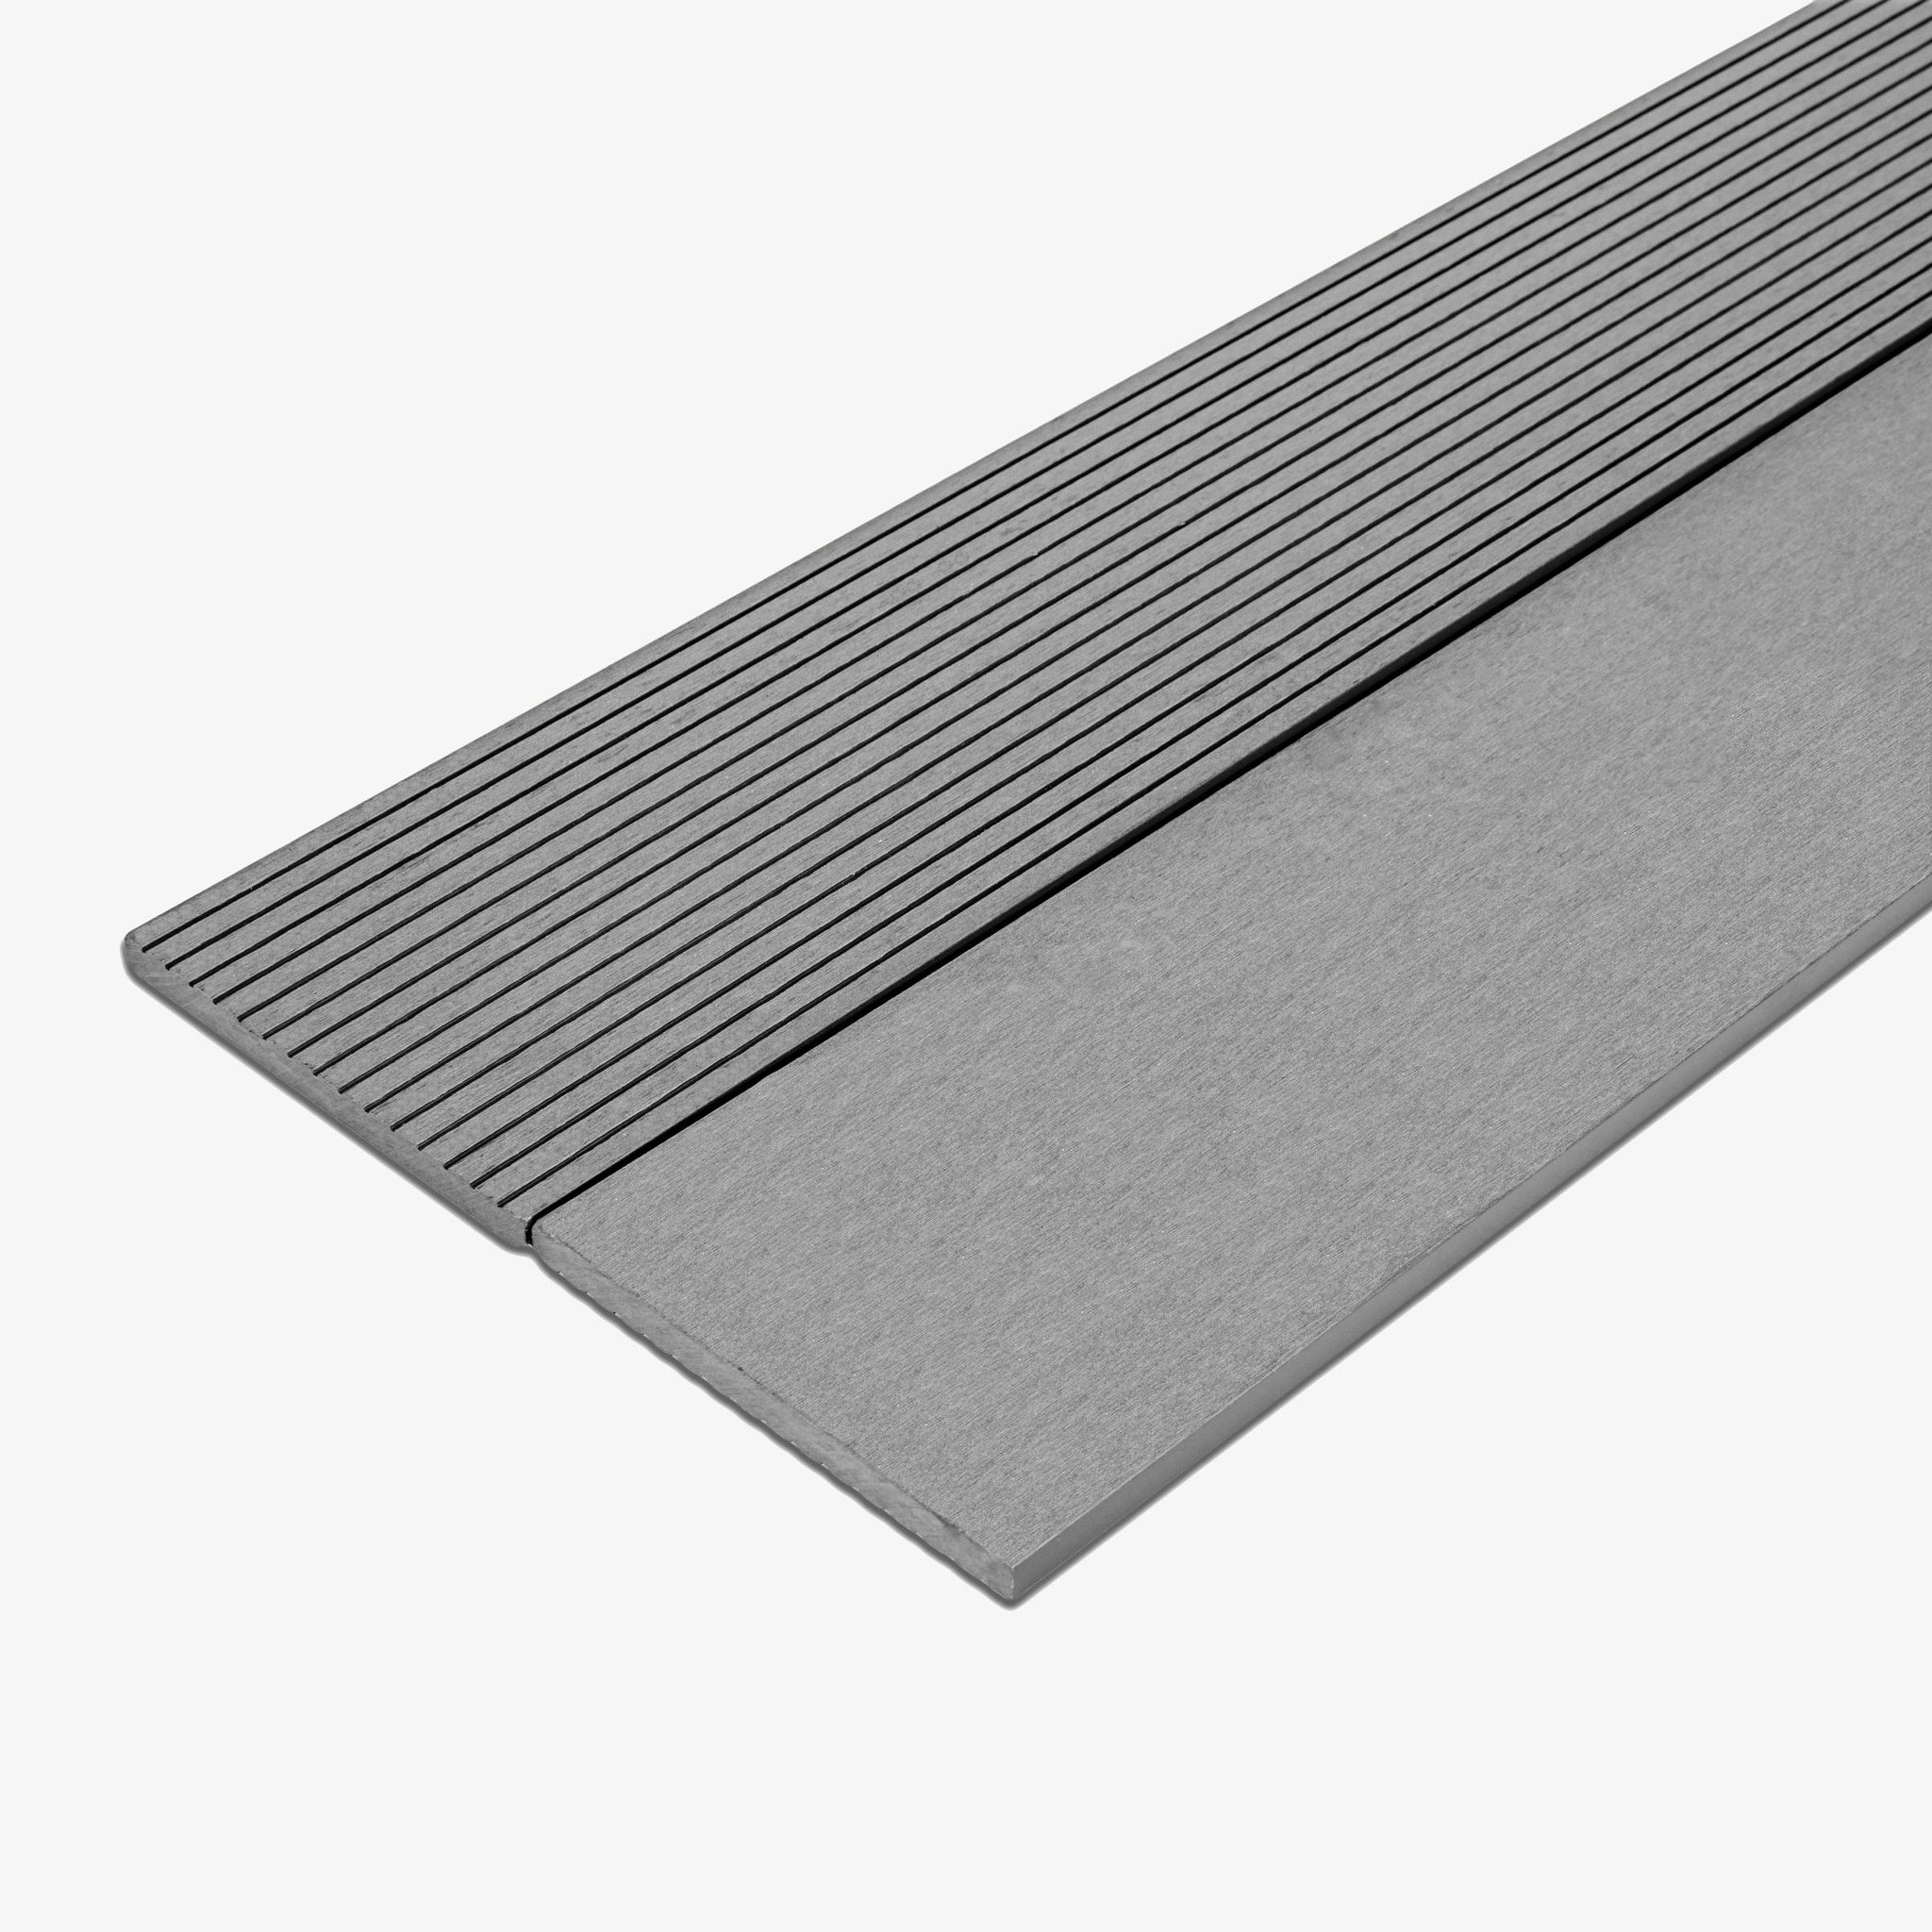 Composite Deck Fascia Board - Stone | HYPERION Decking